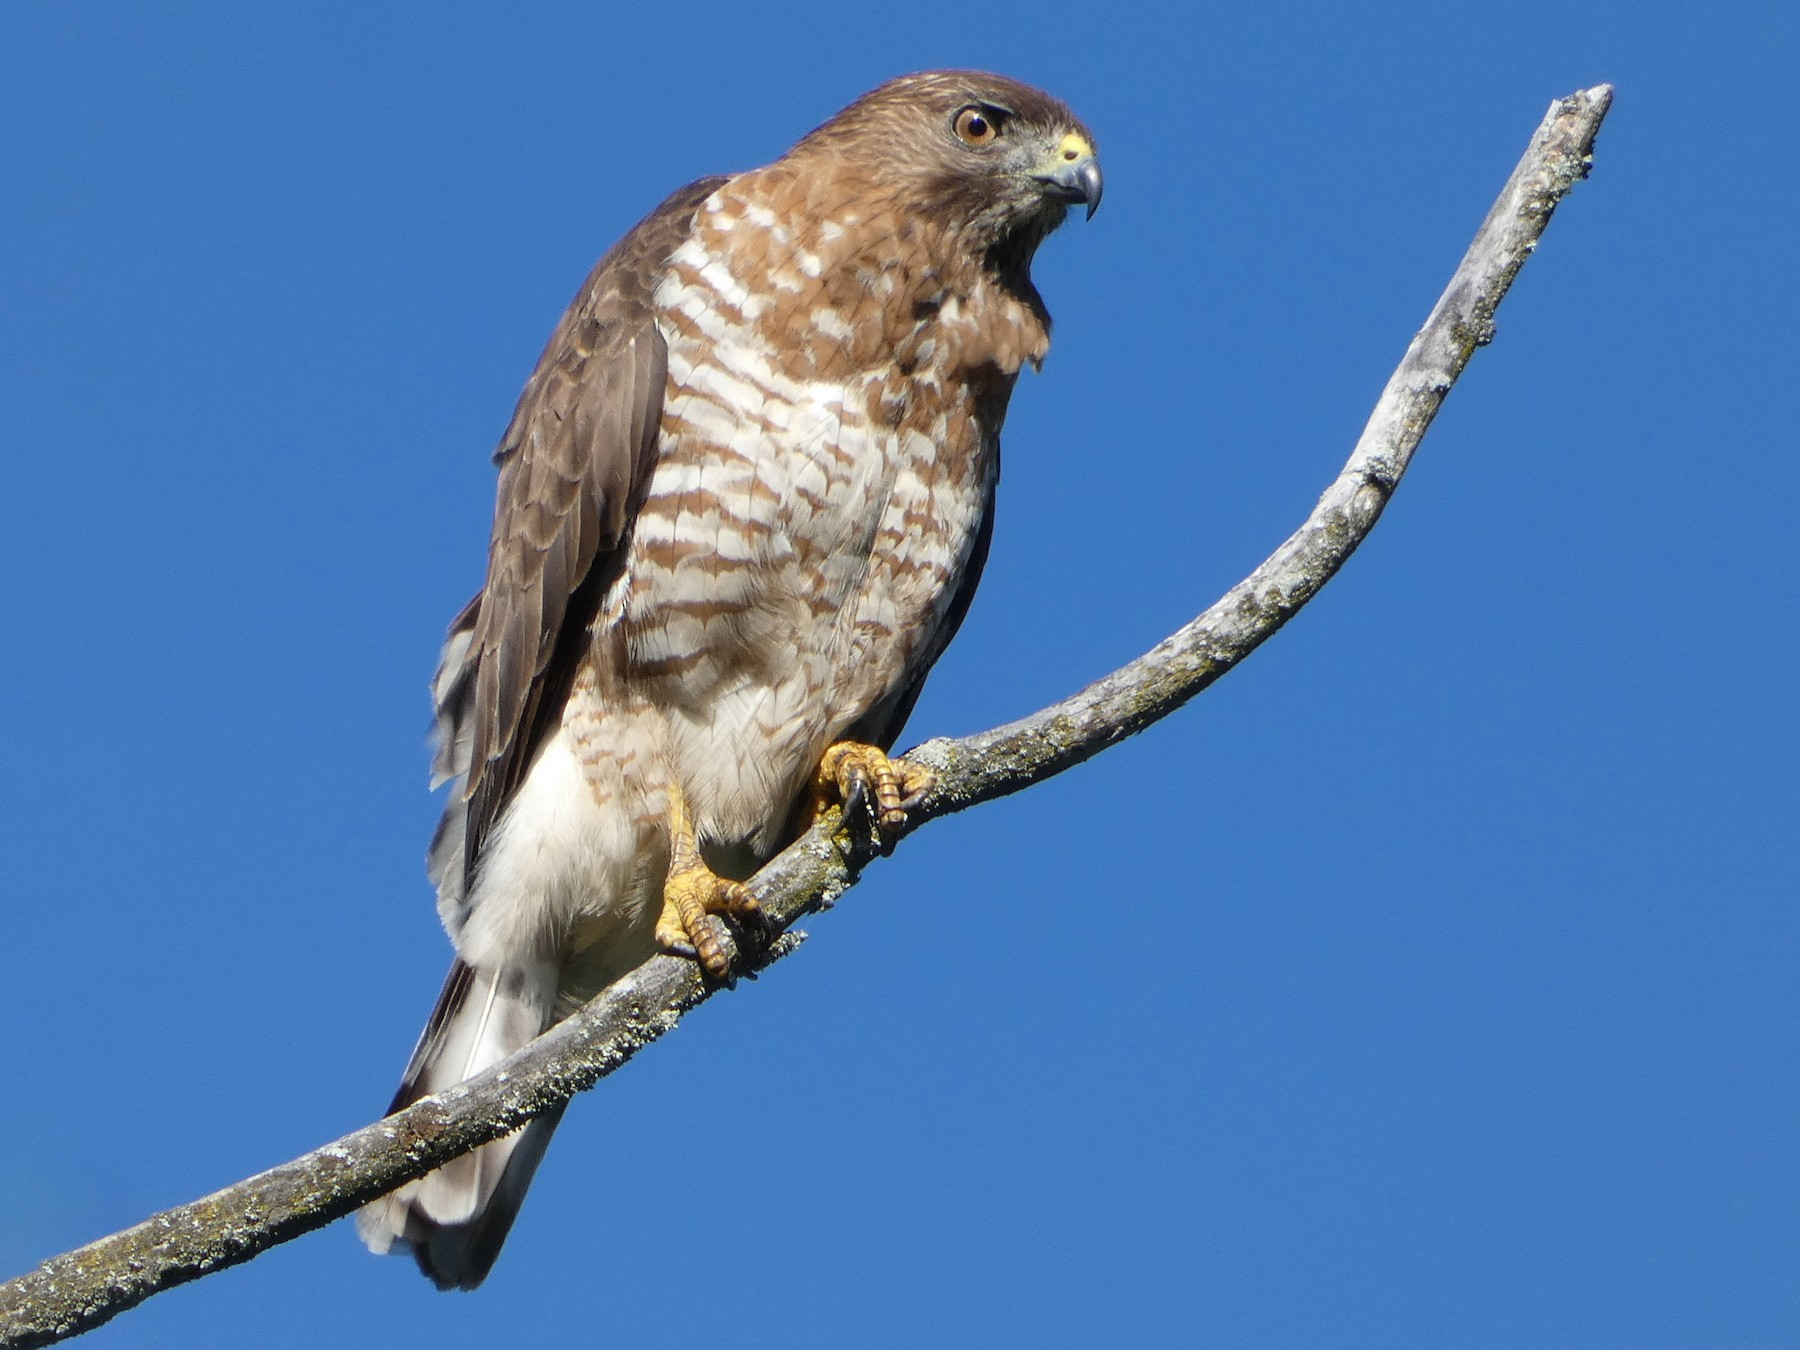 Broad-winged Hawk - Monique Berlinguette